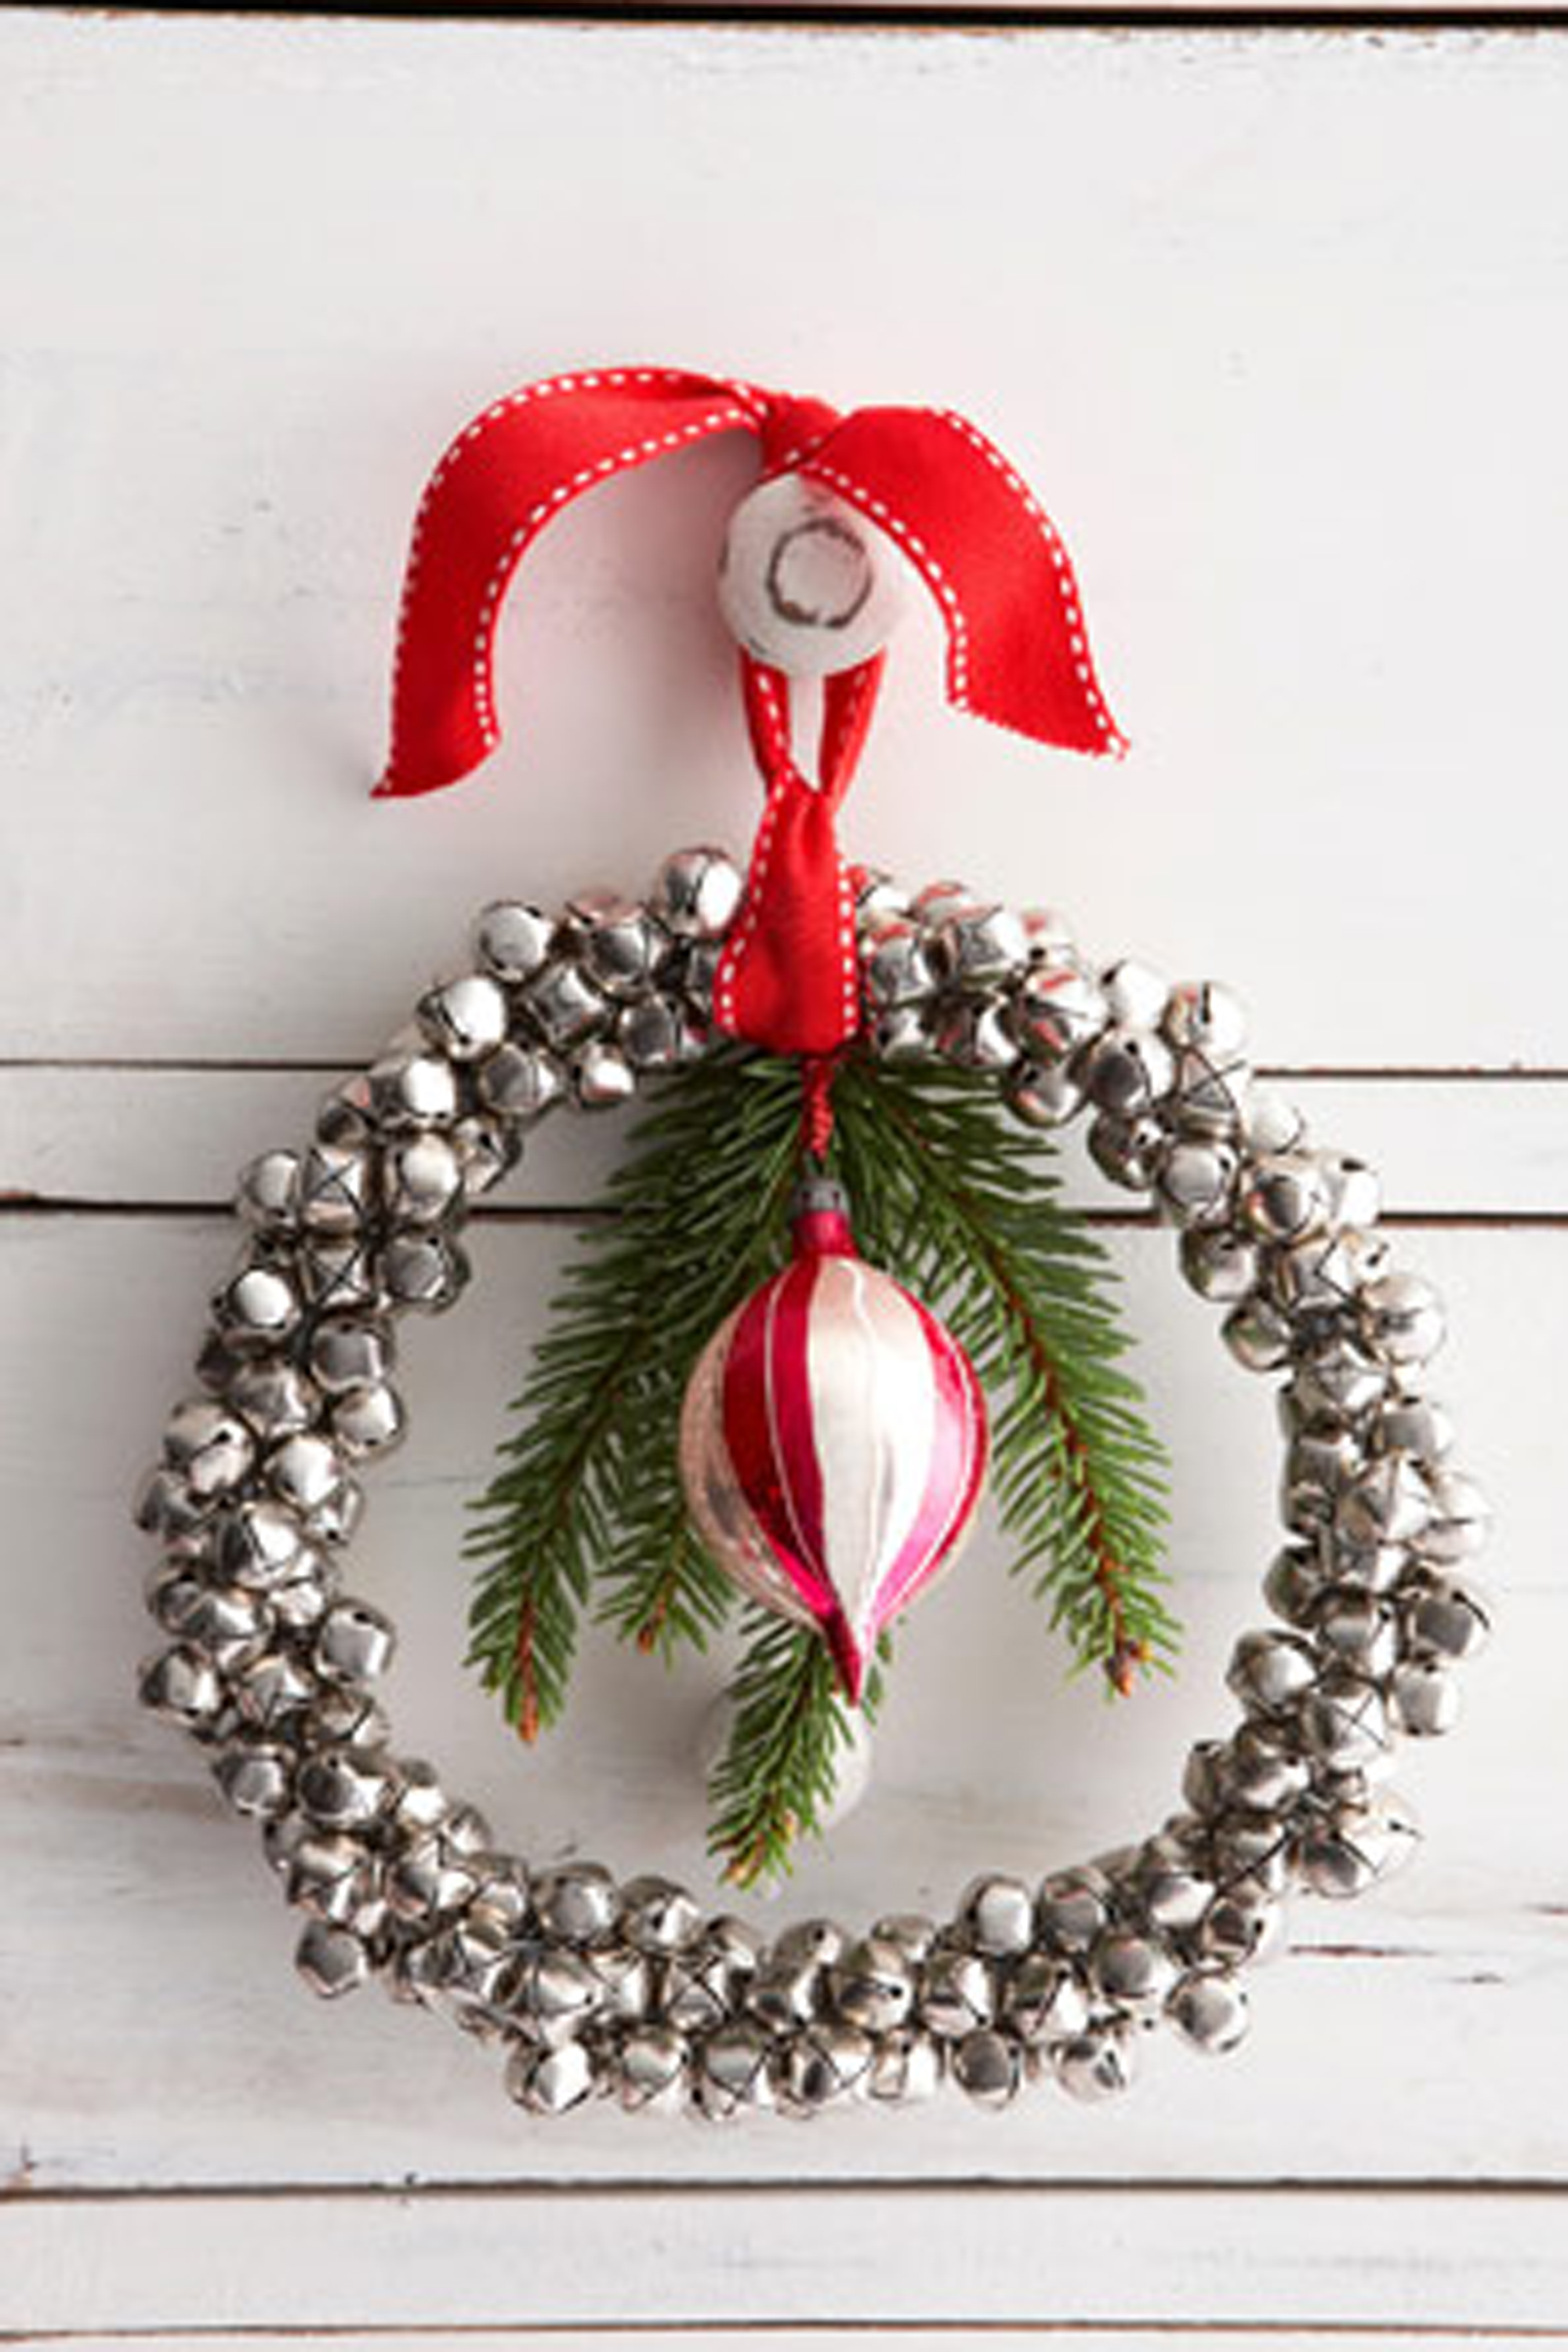 50+ diy christmas wreath ideas - how to make holiday wreaths crafts